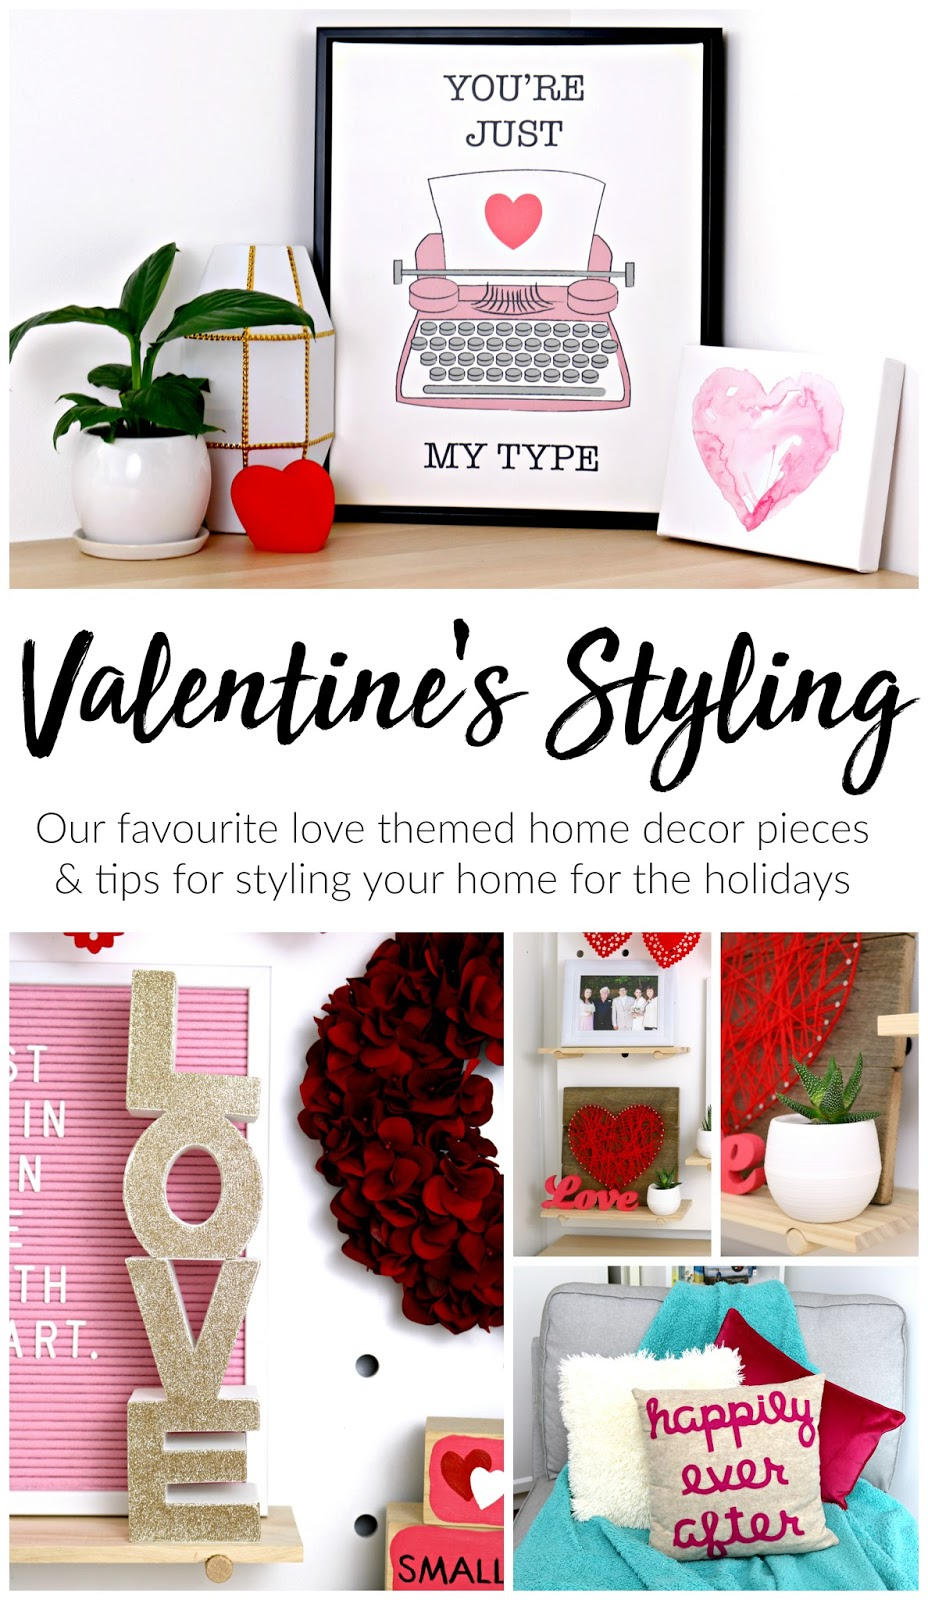 Valentine's Day Home Decor Styling – inspiration, easy valentine's decoration ideas, red pink home décor theme